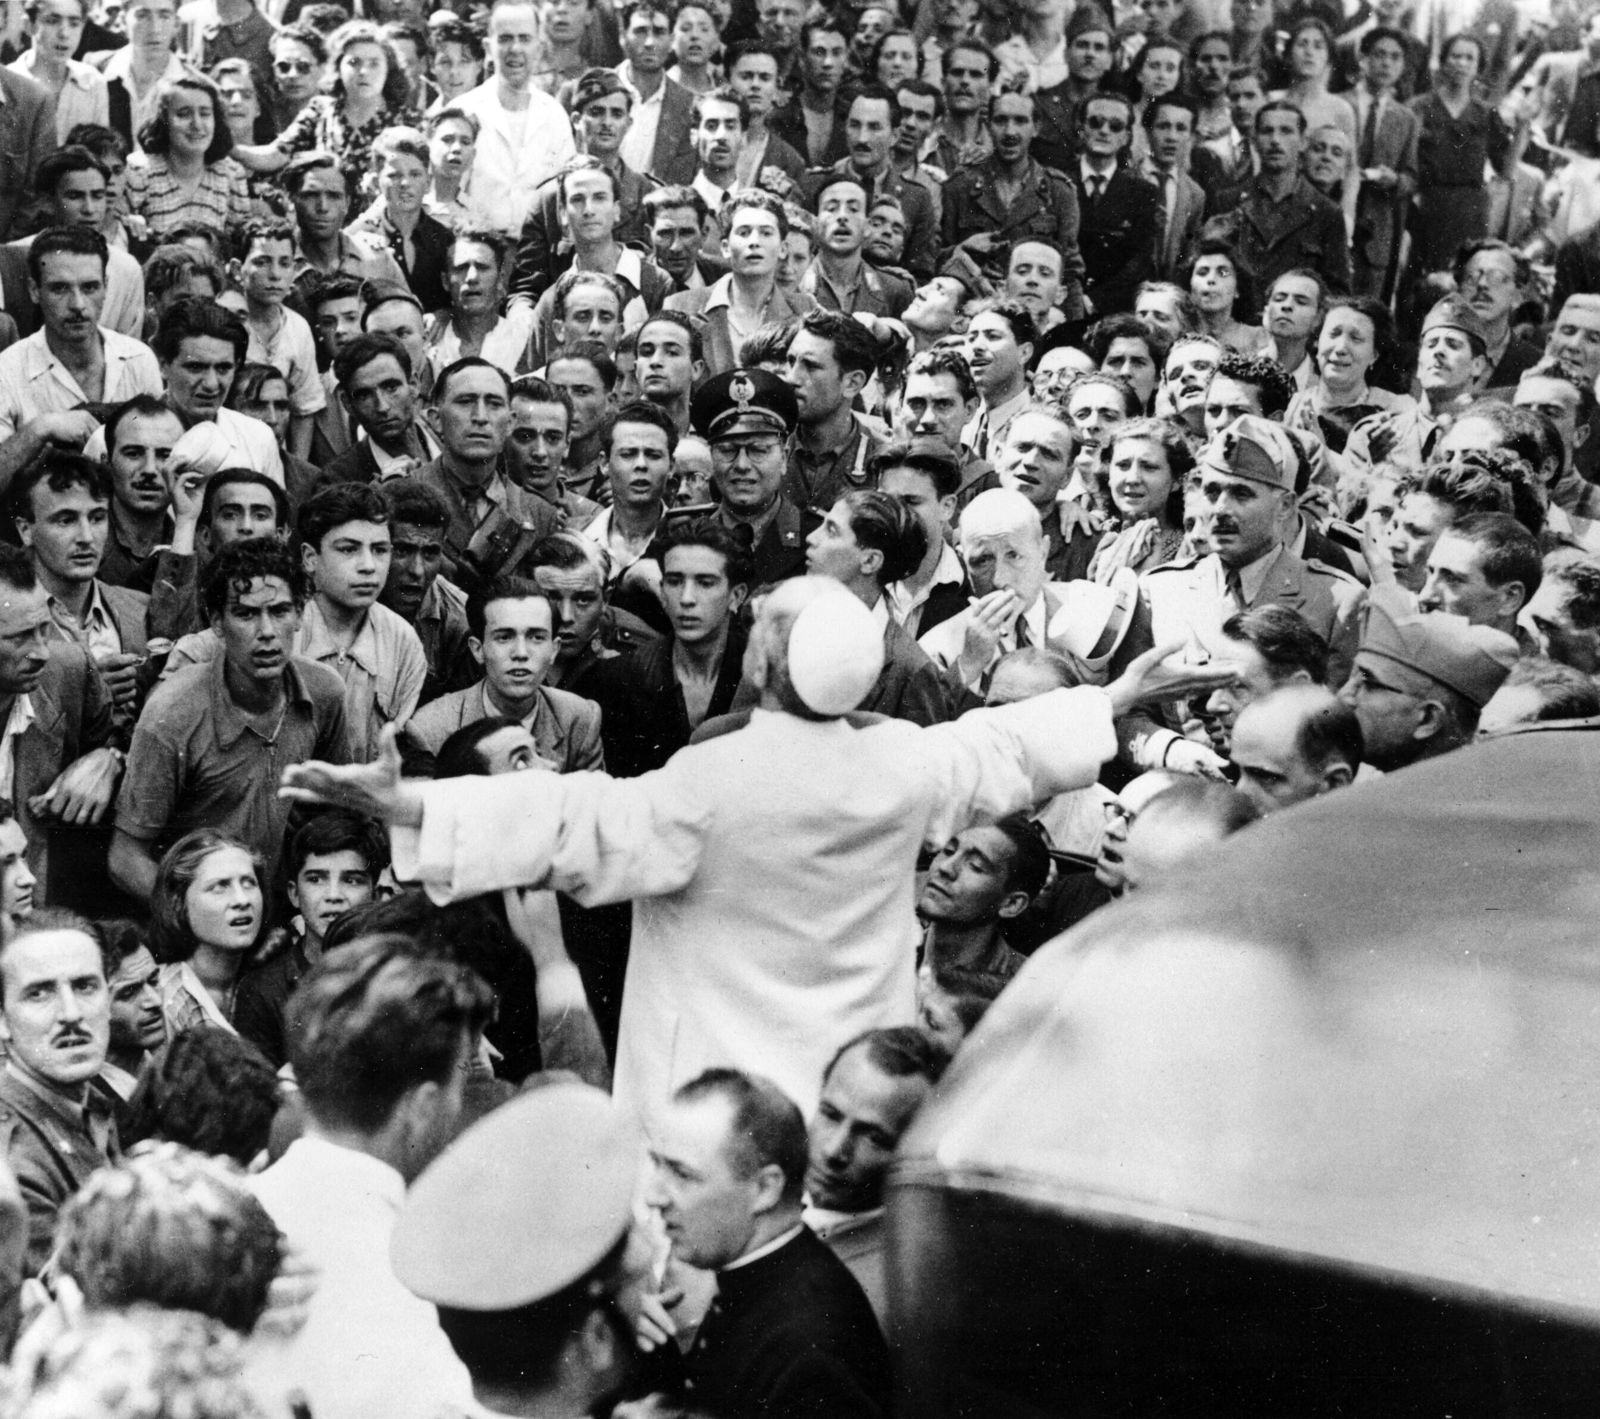 In this Oct. 15, 1943 file photo, men, women and soldiers gather around Pope Pius XII, his arms outstretched, during his inspection tour of Rome, Italy, after the Aug. 13 American air raid during World War II. The Vatican's chief librarian and archivists said Thursday, Feb. 20, 2020 that all researchers _ regardless of nationality, faith and ideology _ were welcome to request access to the soon-to-open Vatican's apostolic library on Pope Pius XII starting March 2.  (AP Photo, file)